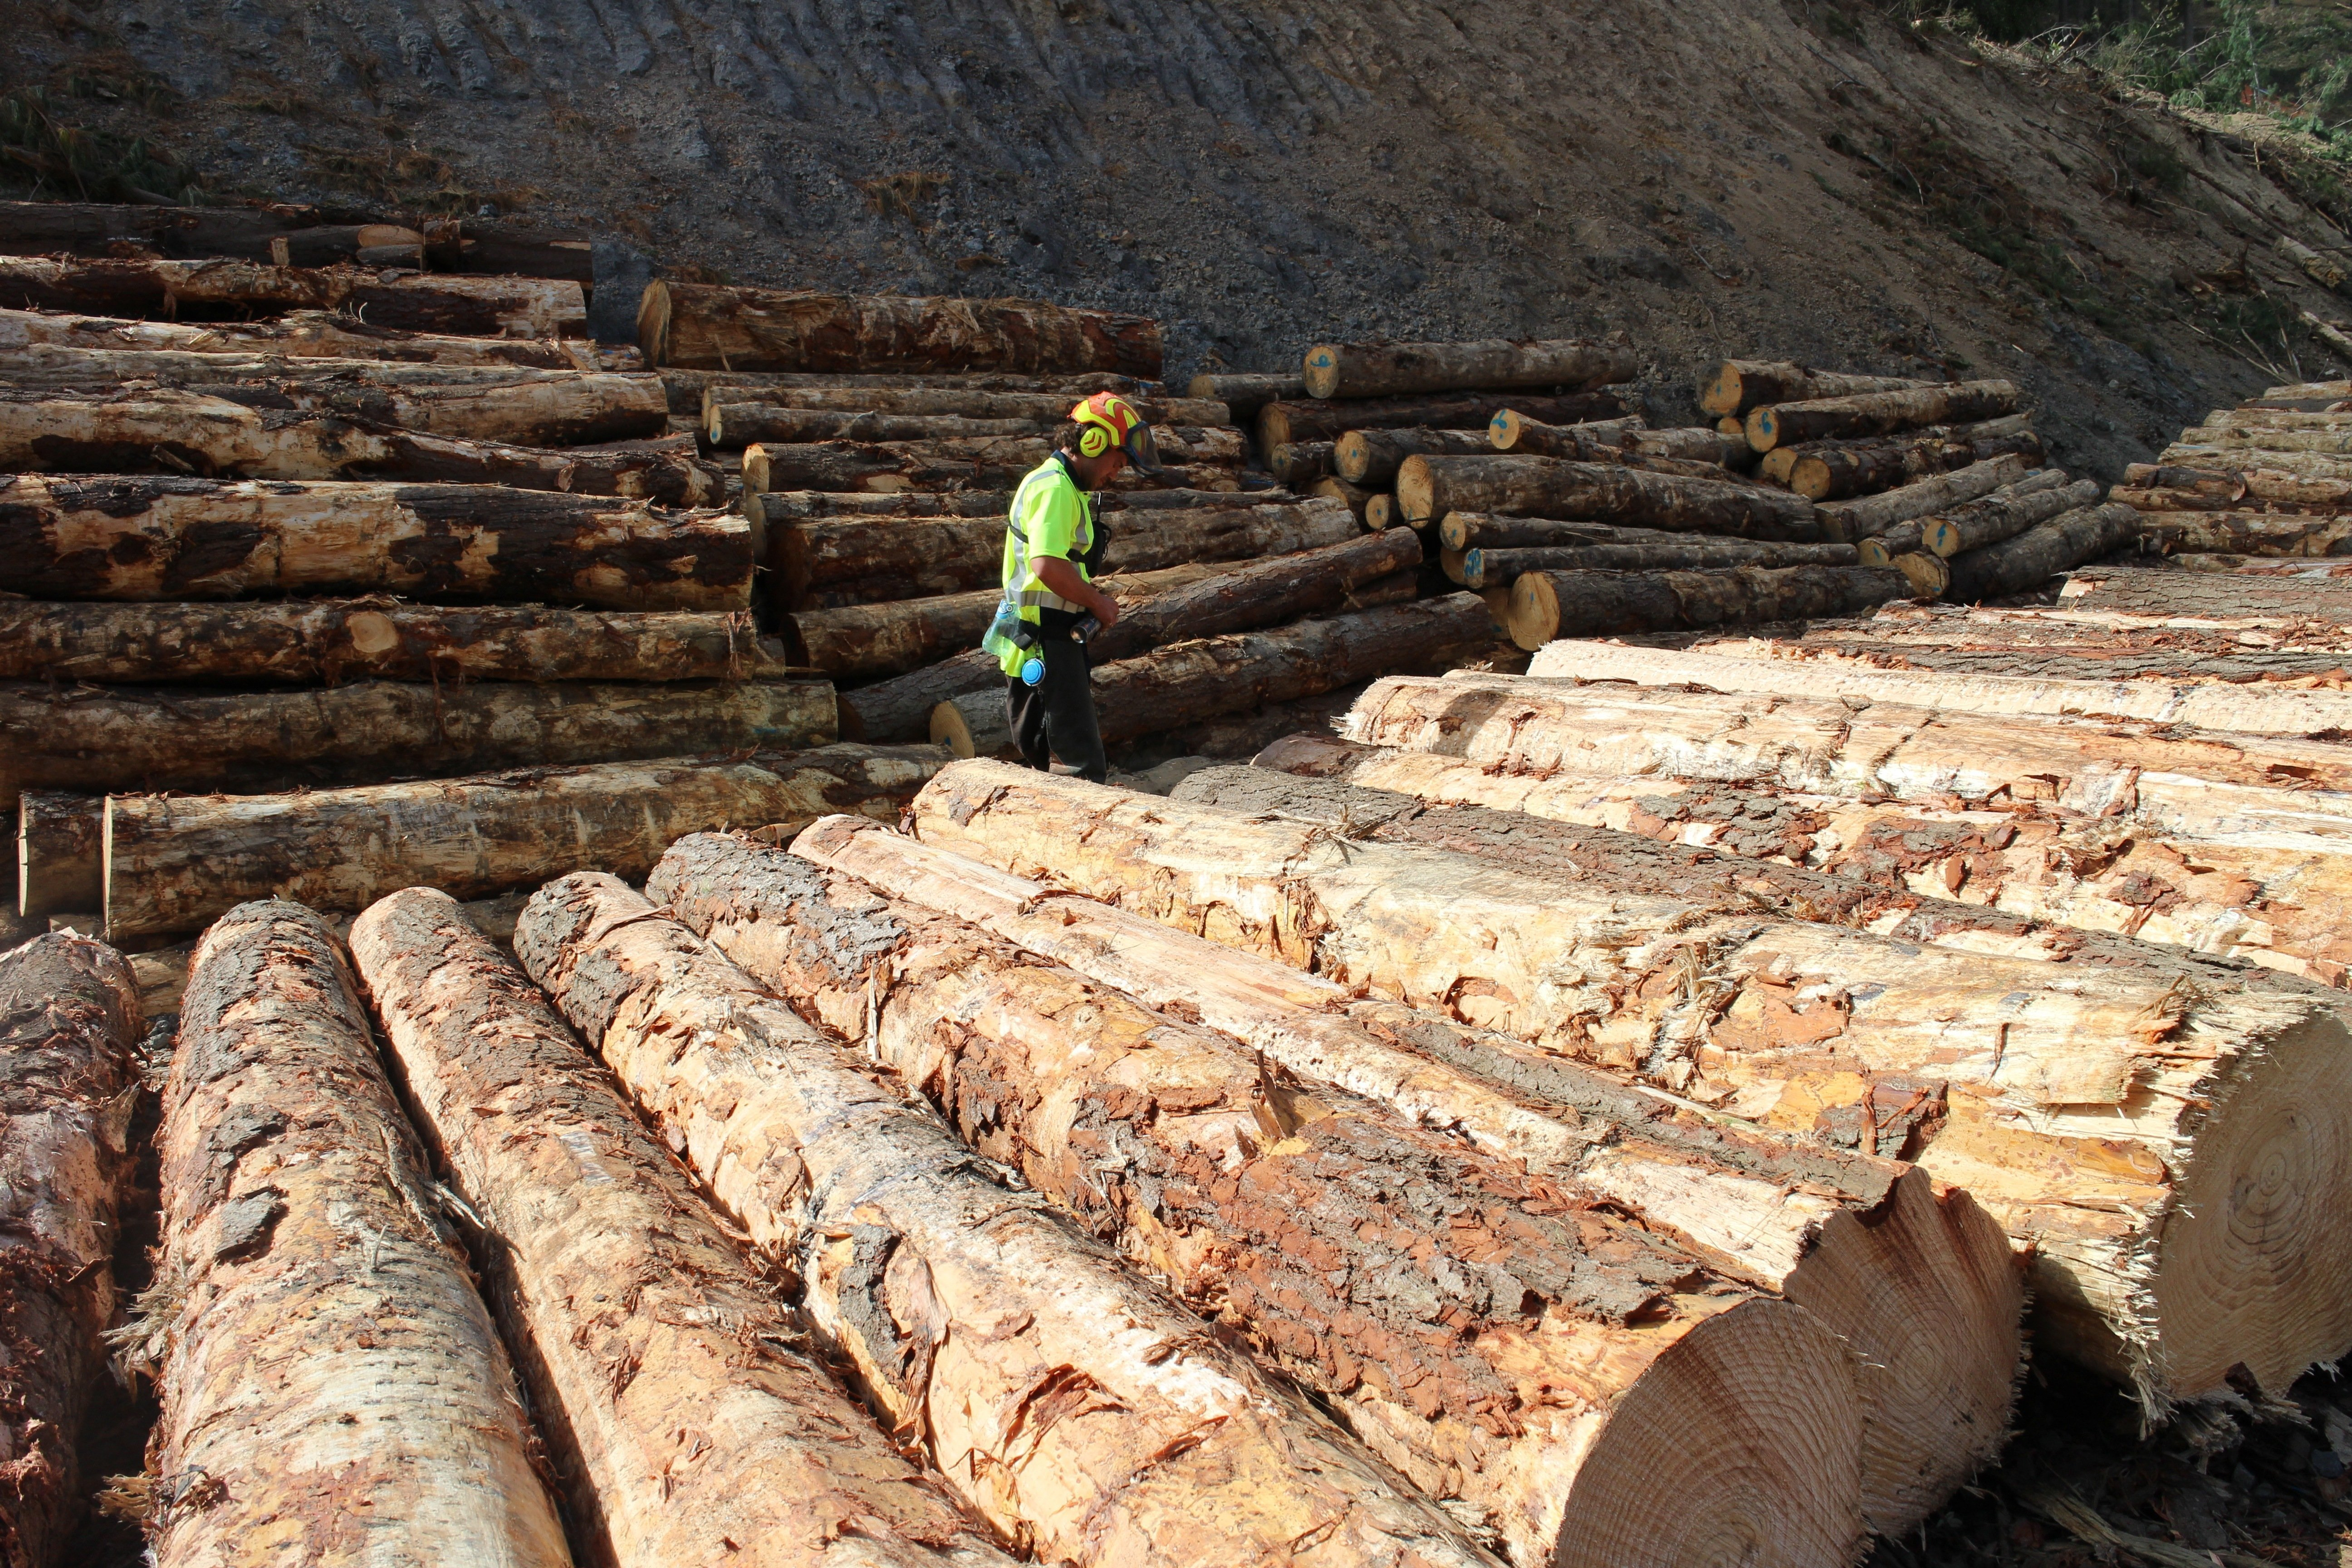 Logs from a commercial forest